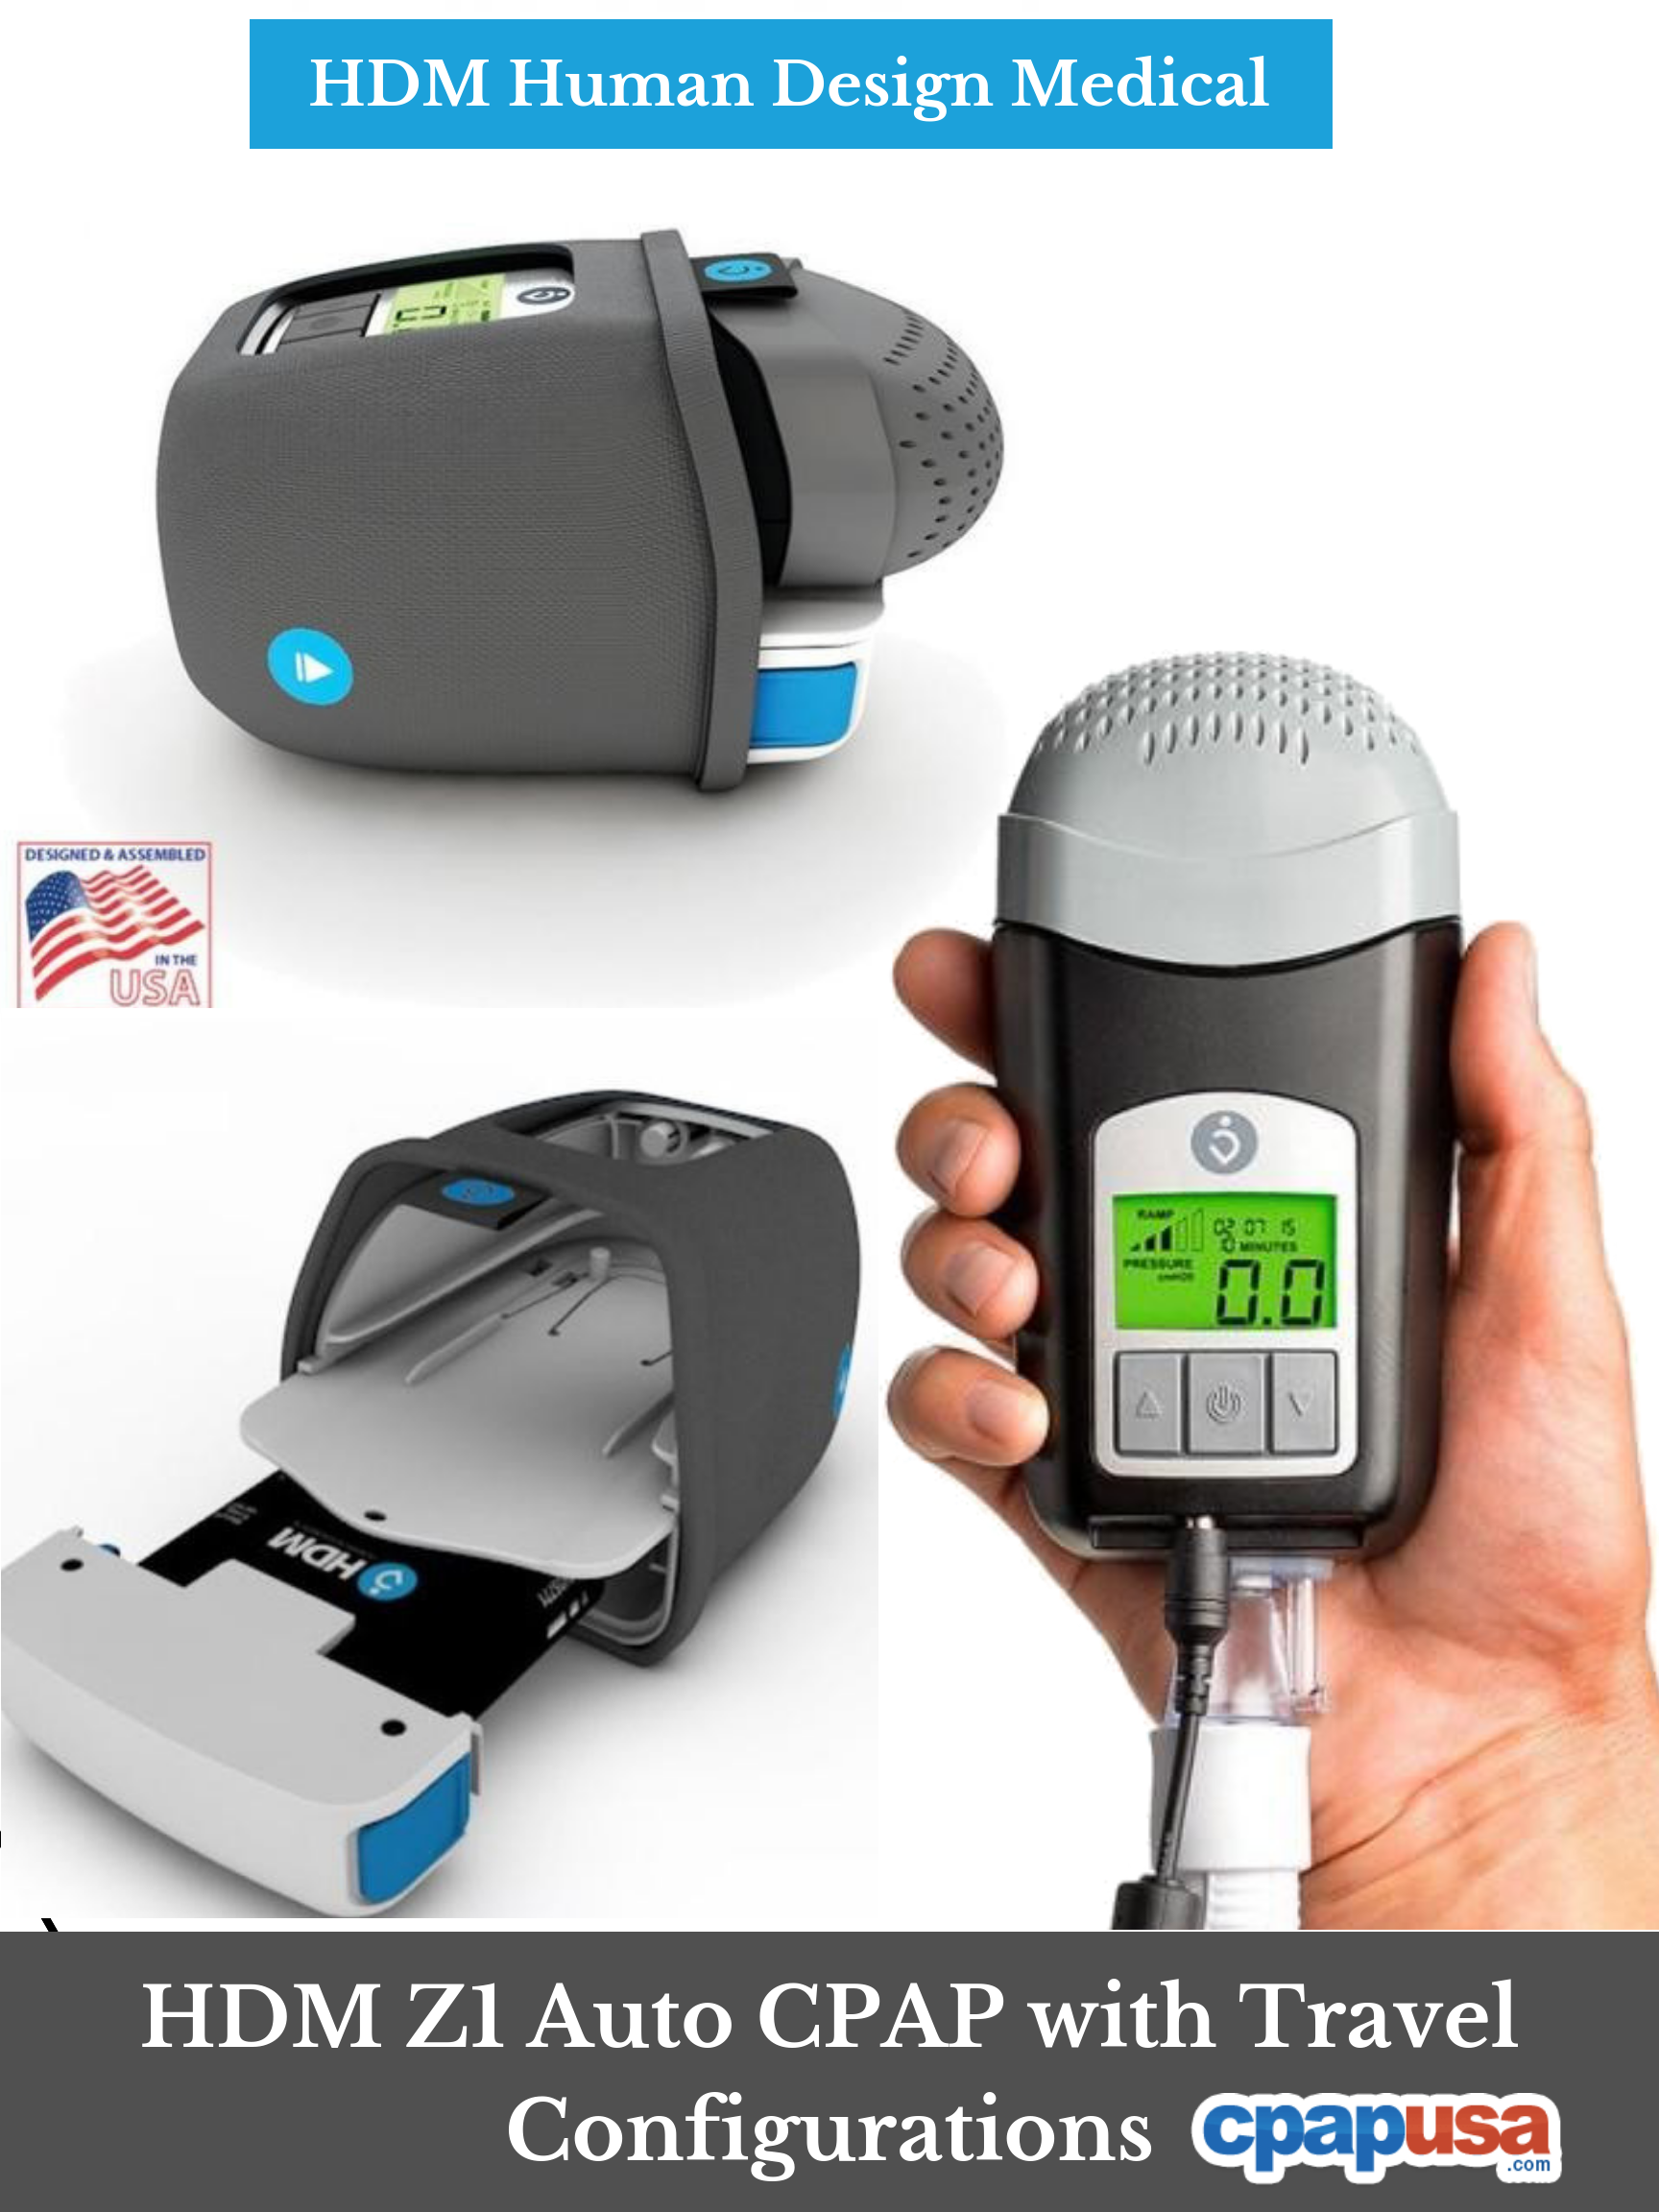 Lightweight Compact And Quiet The Z1 Cpap Machine From Hdm Delivers Travel Friendly Cpap Therapy That Can Fit In The Palm Of Your H Cpap Machine Cpap Travel